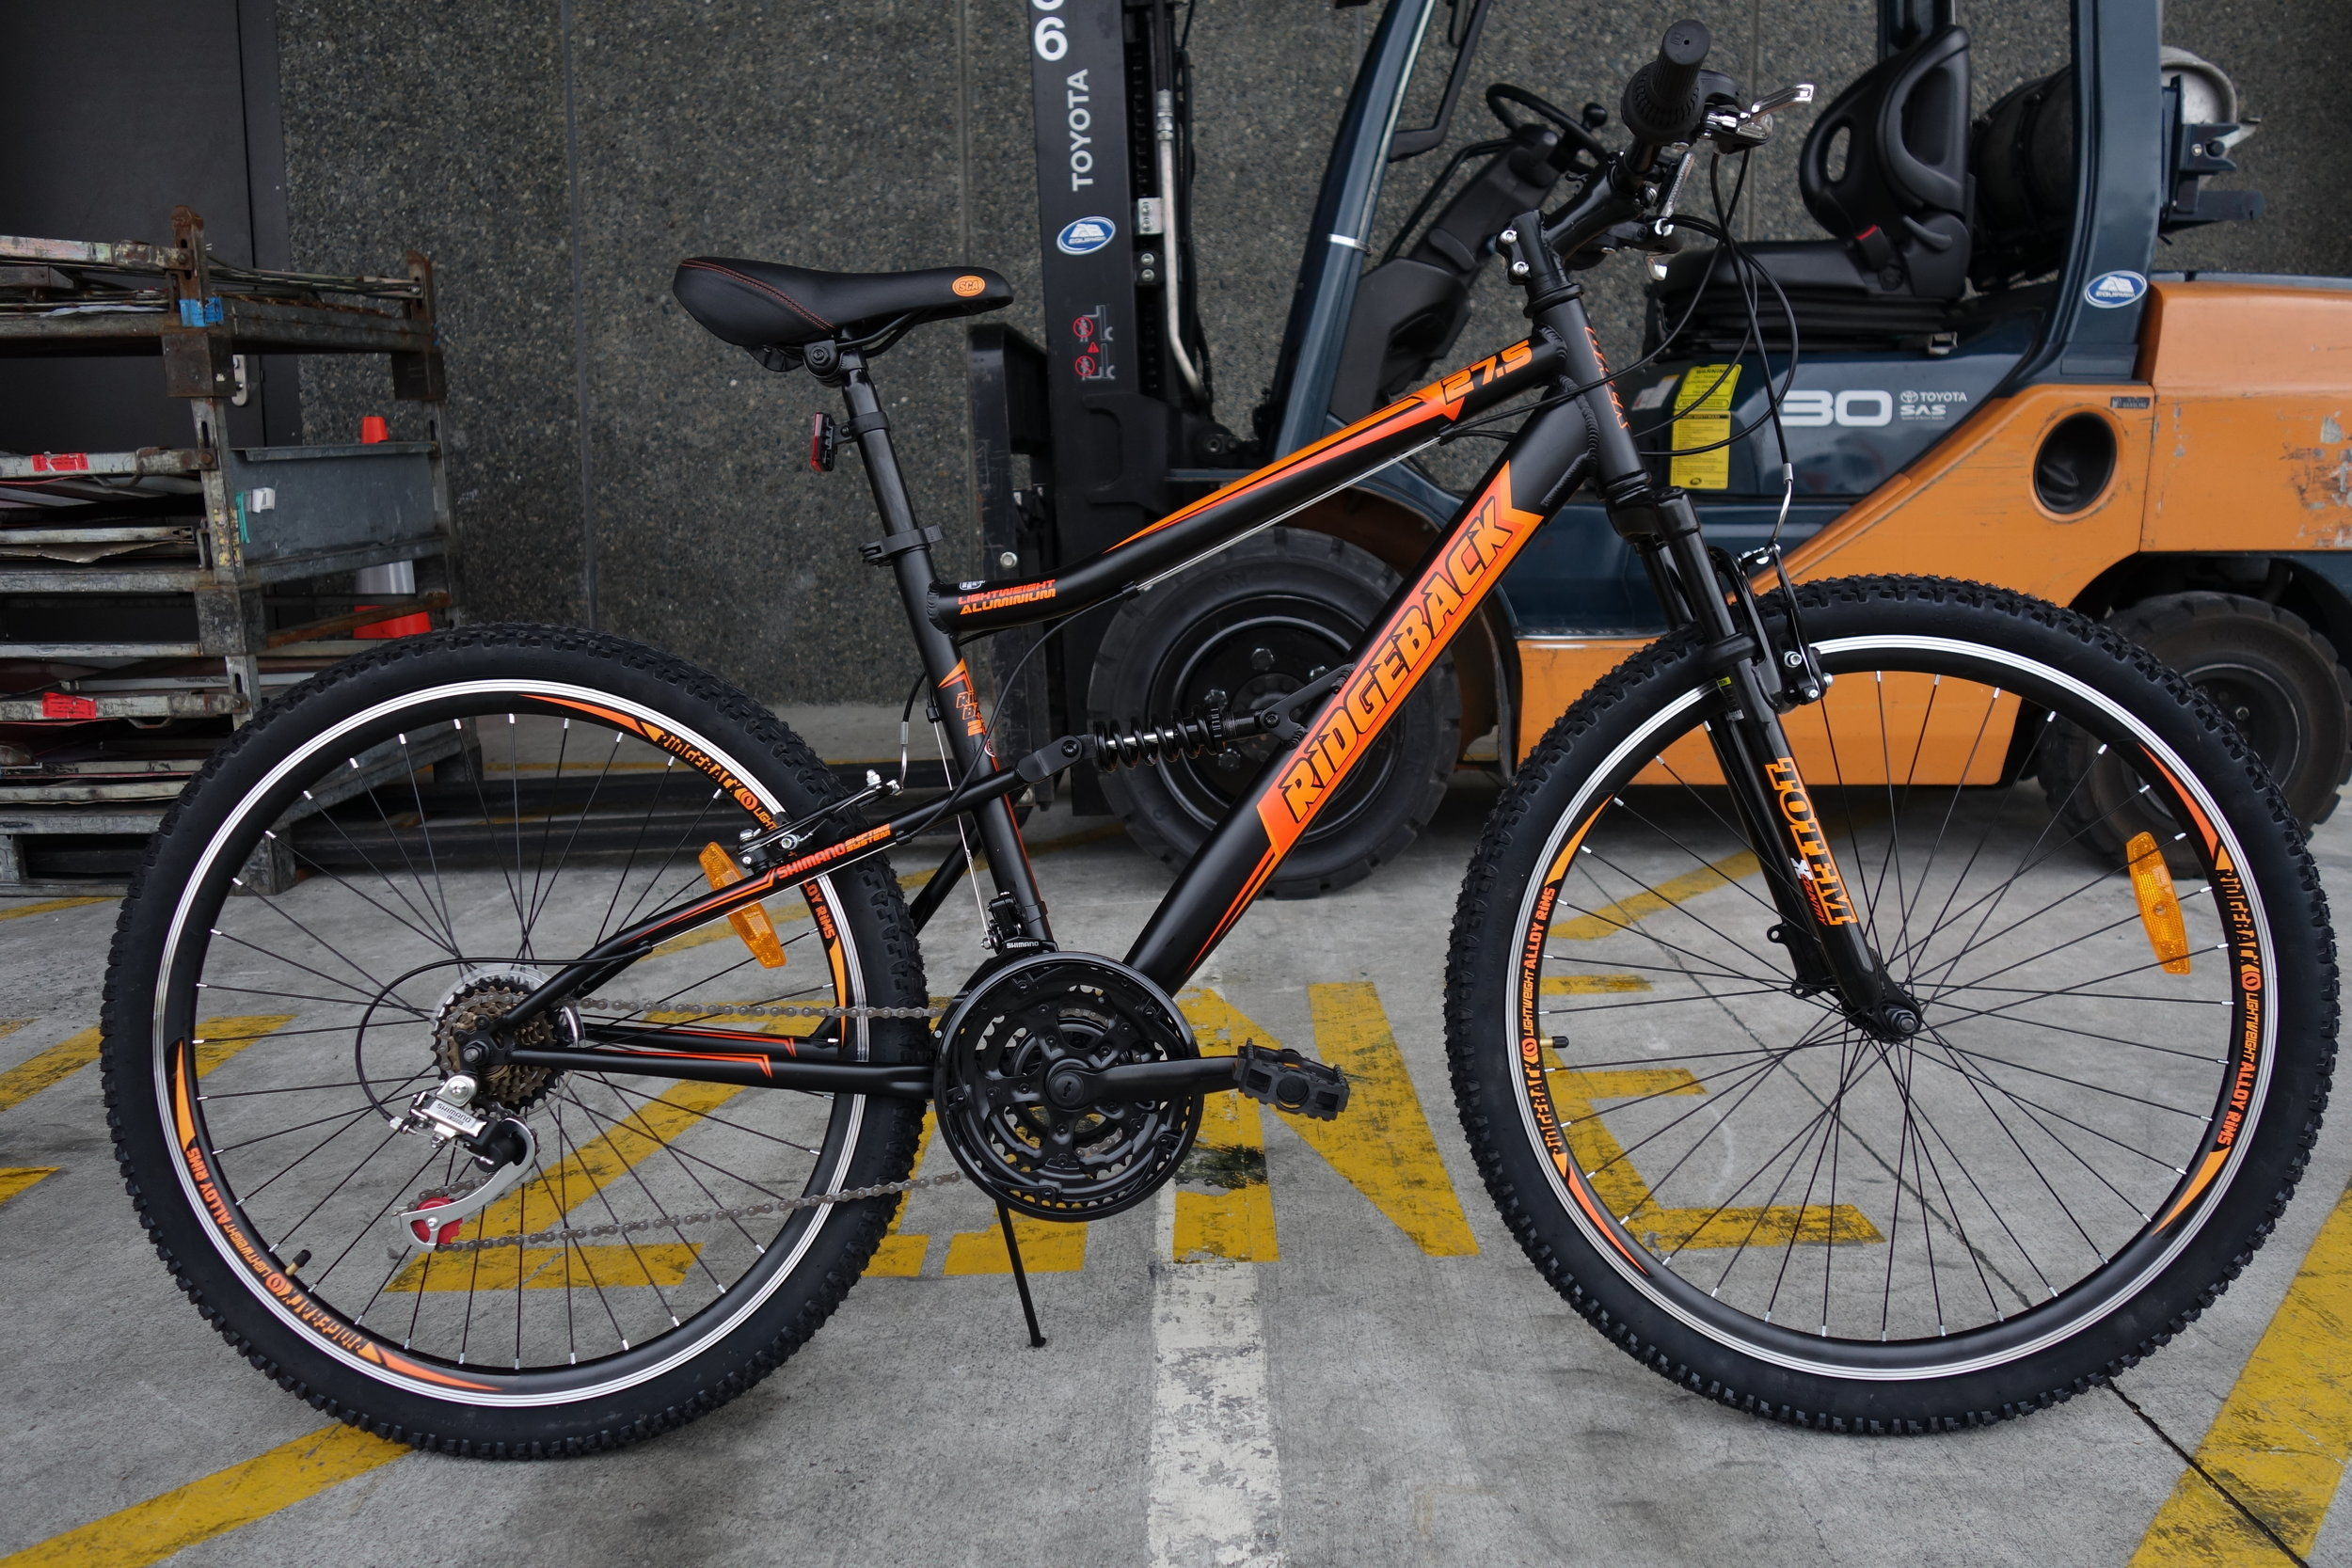 The 27.5 Ridgeback in it's preferred enviroment. 24 gears. Integrated bash guard.High rise stem. 650mm bars. Coil sprung forks with a race winning 75mm of undamped stroke. Check out the integrated work stand, fix your bike anywhere, anytime, great for photos too.